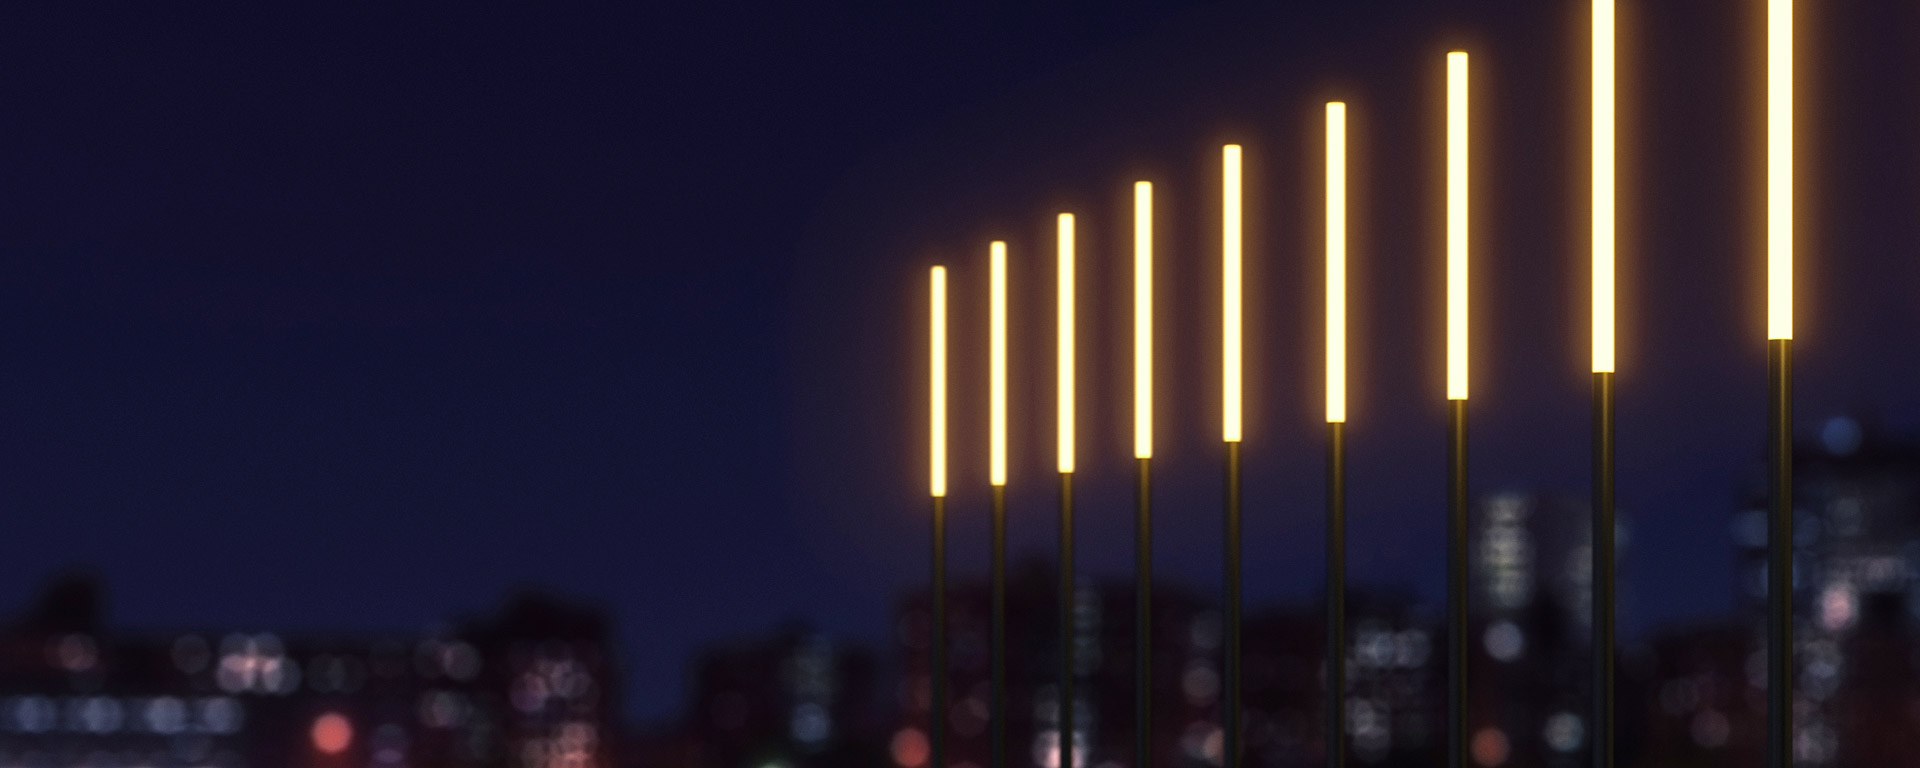 Available in a range of heights and colour temperatures, this striking marker light can provide the sculptural effect and atmosphere you choose, punctuating outdoor spaces with a seamless warm glow or pillars of clear white.